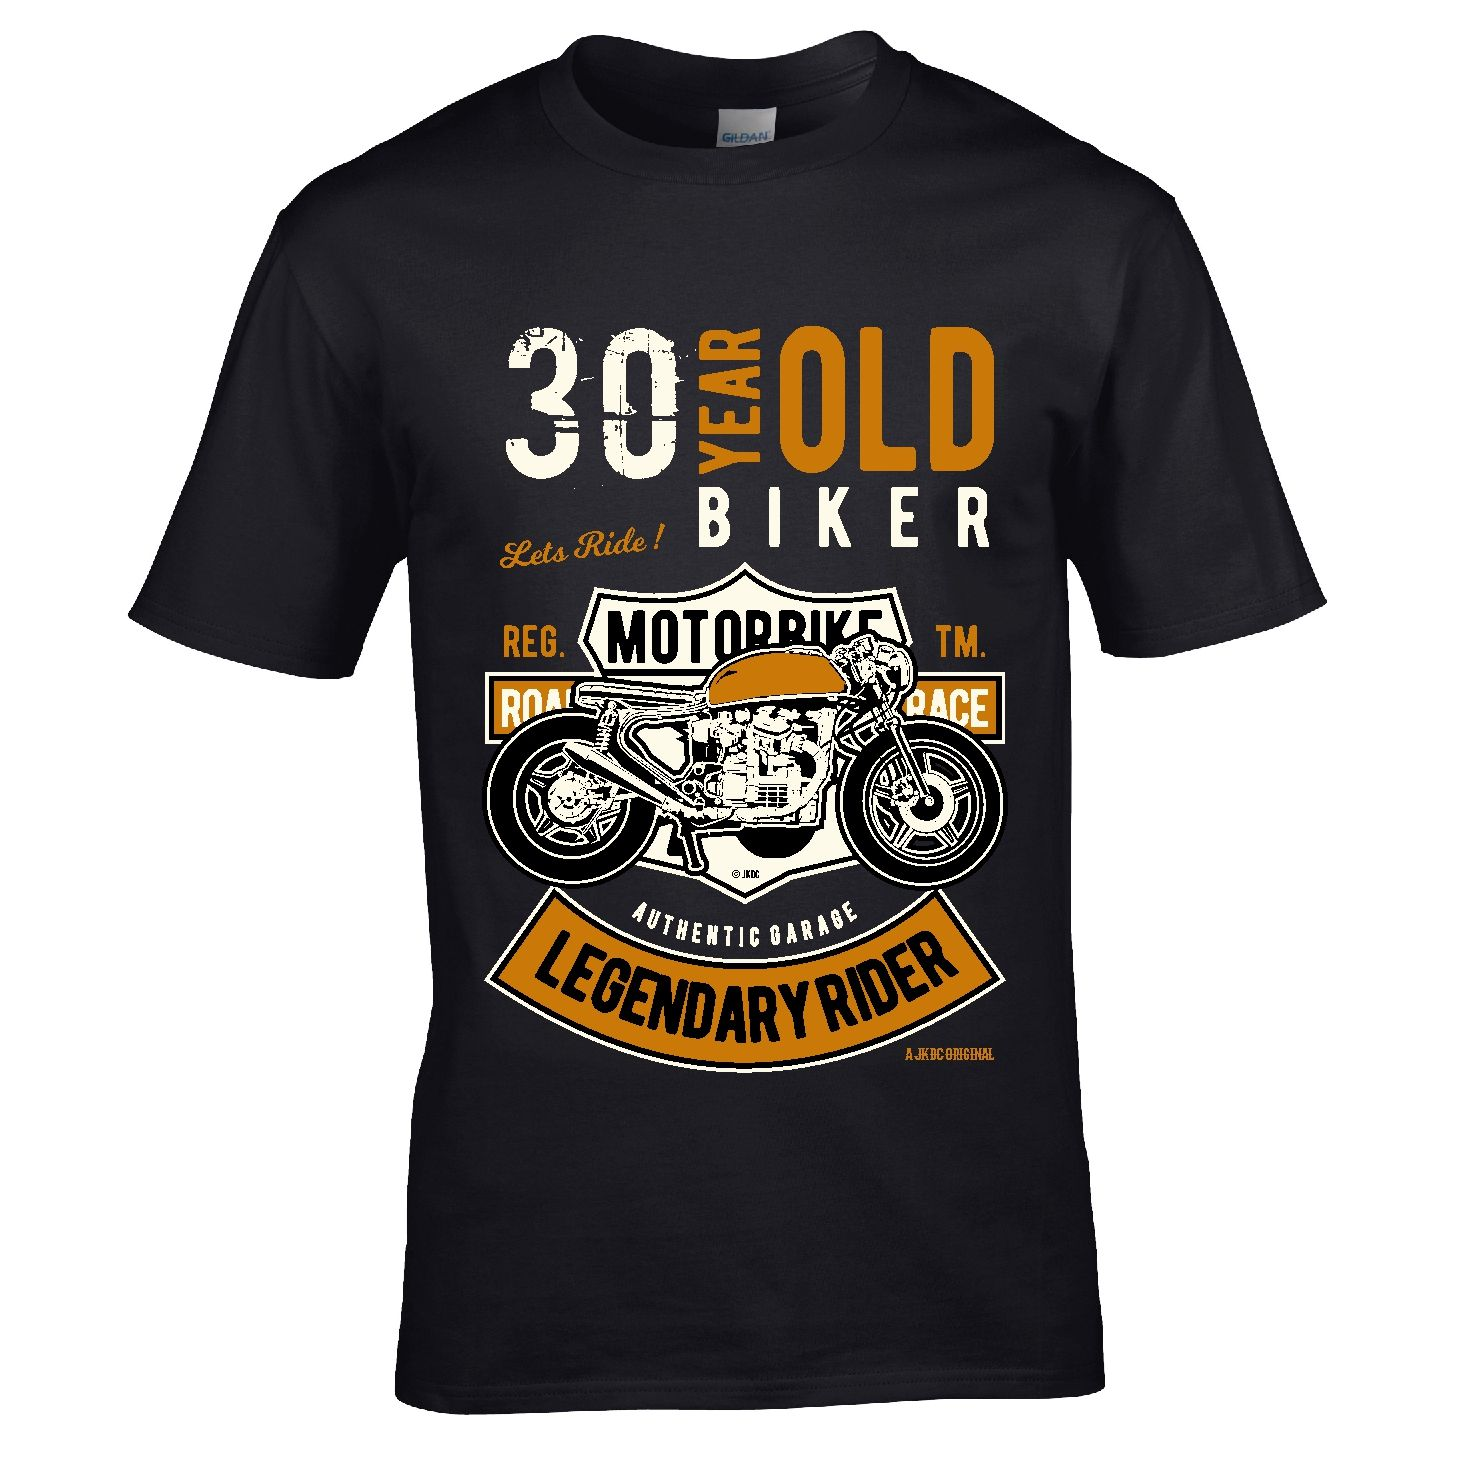 Brand New With Tags Printed To Order In Our UK Workshop Twitter Instagram Premium 30 Year Old